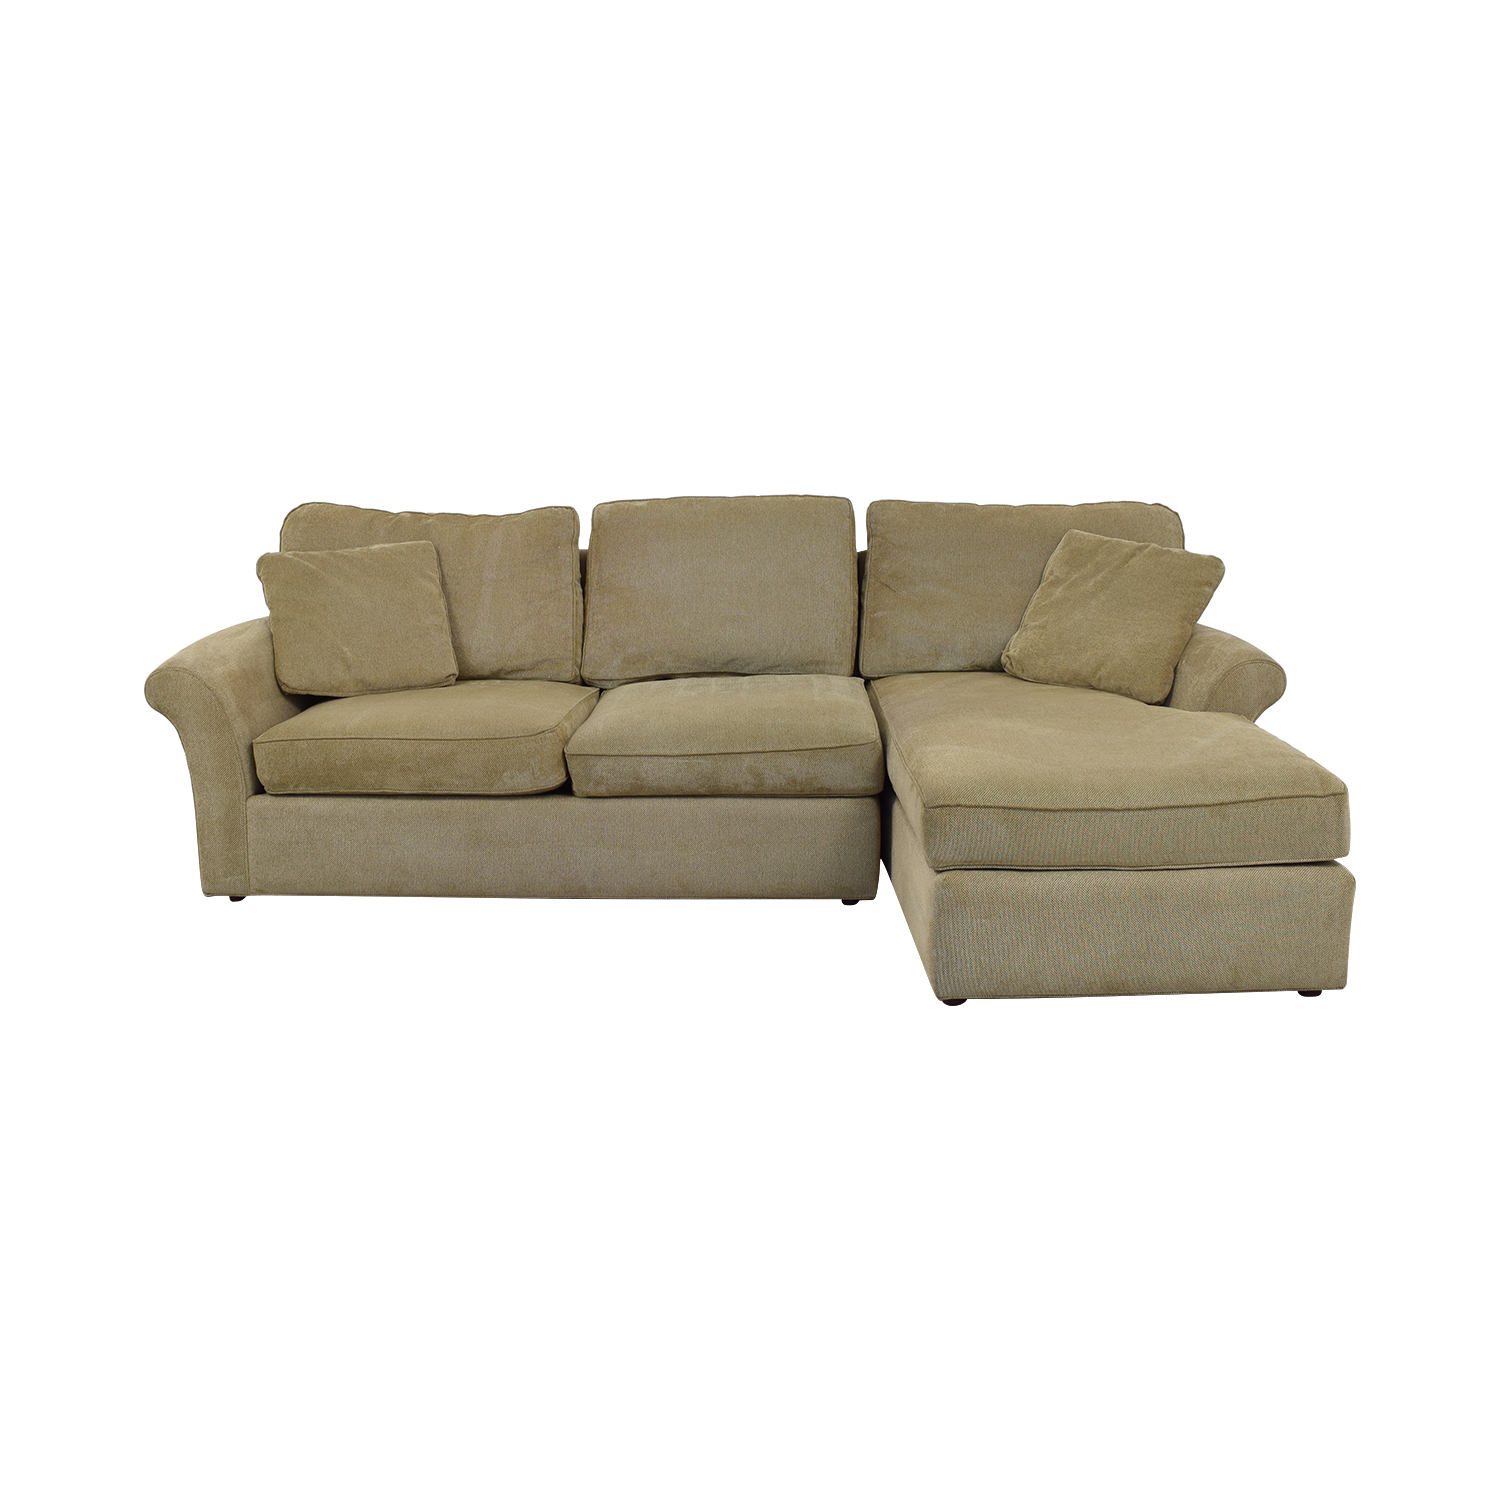 Macy's Macy's Beige Chaise Sectional nj